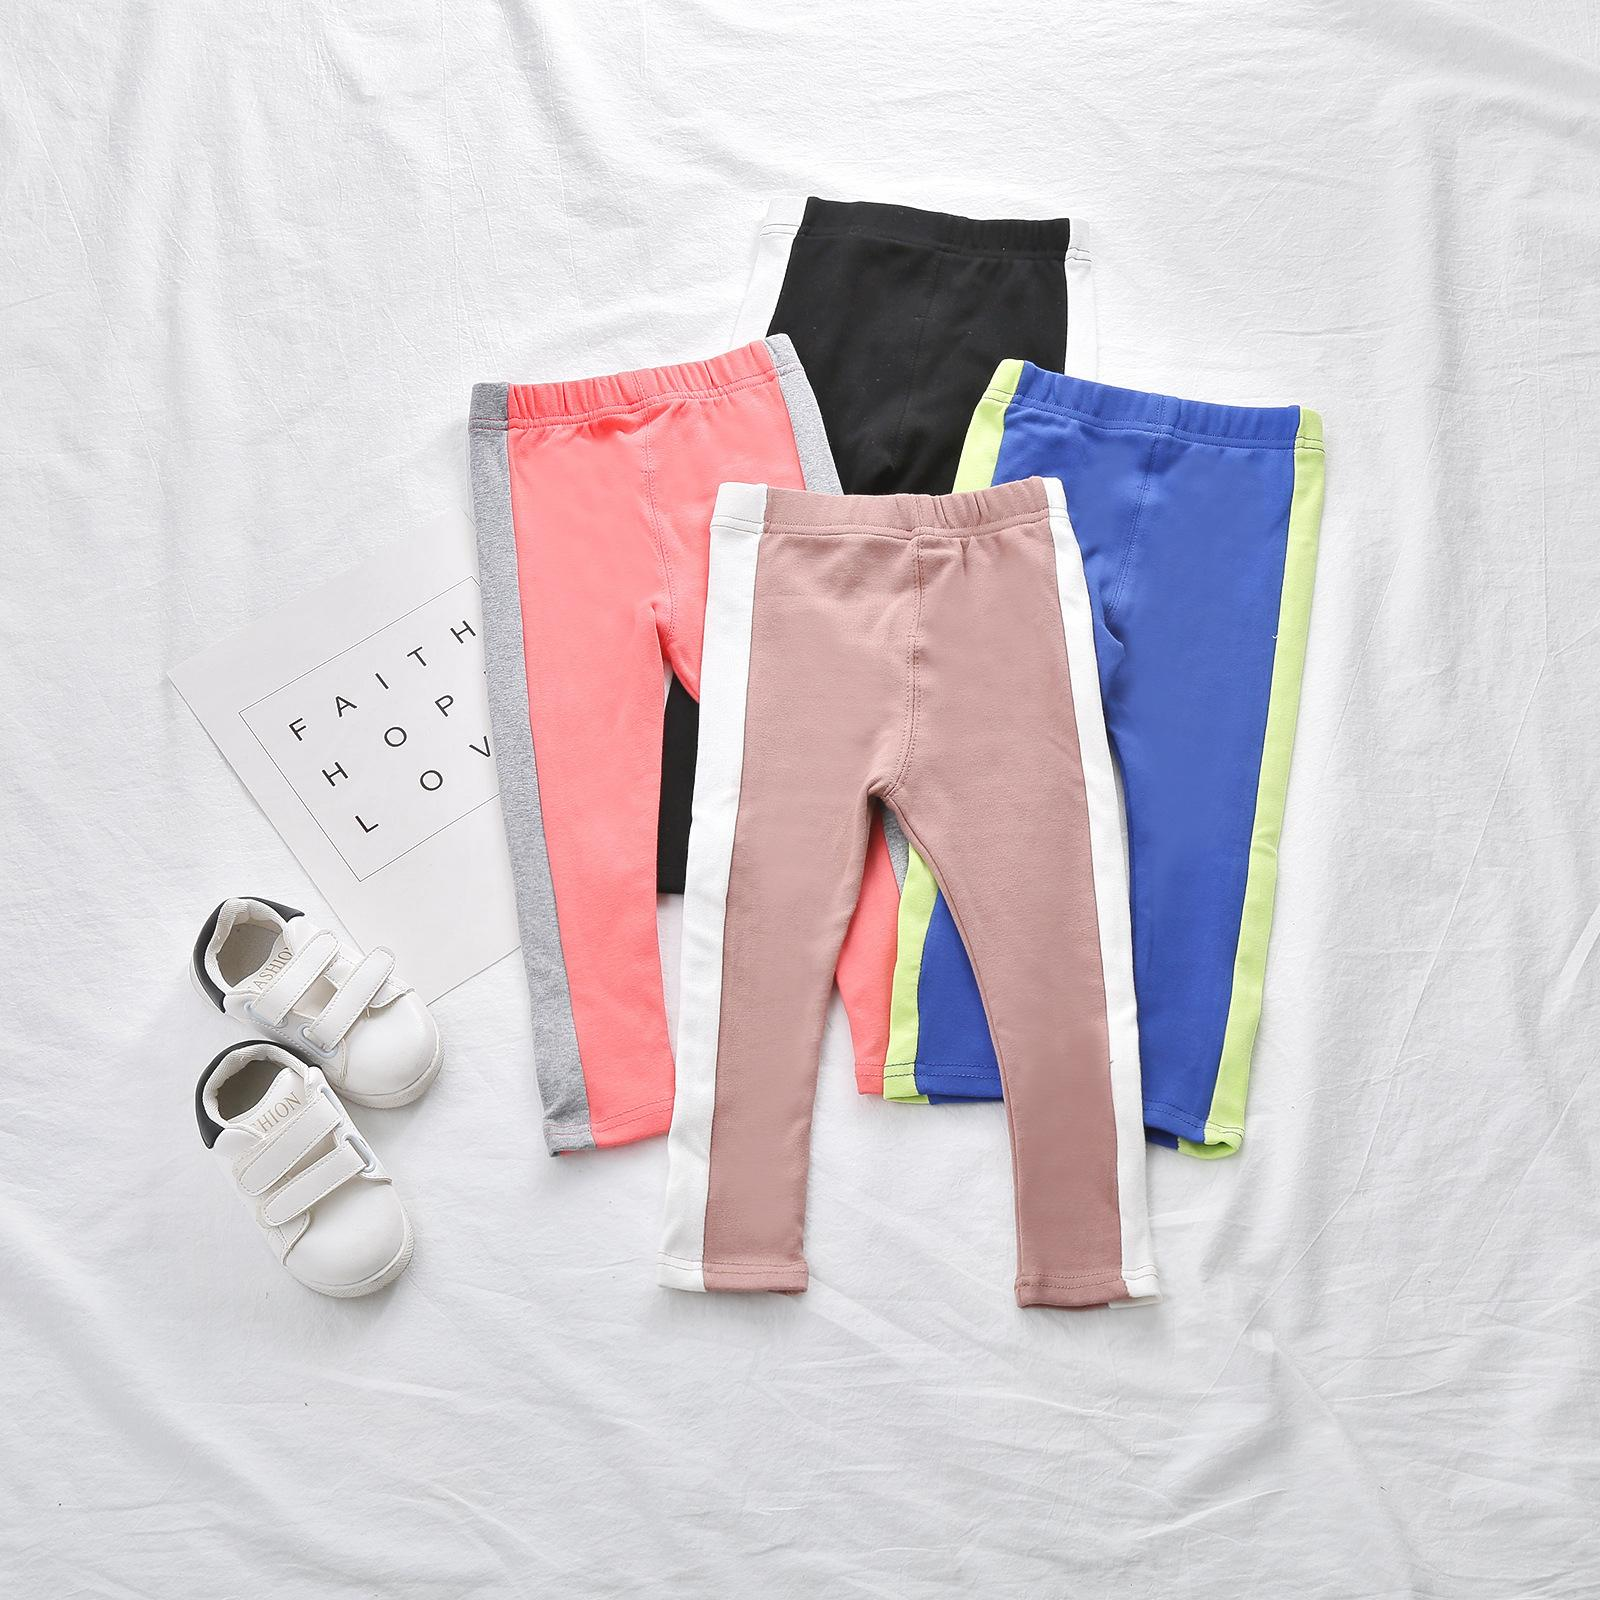 ee5f1ef2950 Children Clothes Toddler Baby Girls Leggings Slim Trousers Girl Pants  Spring Autumn Kids Boys Pants Patchwork Colors Wholesale Kids Hiking Pants  White Dress ...